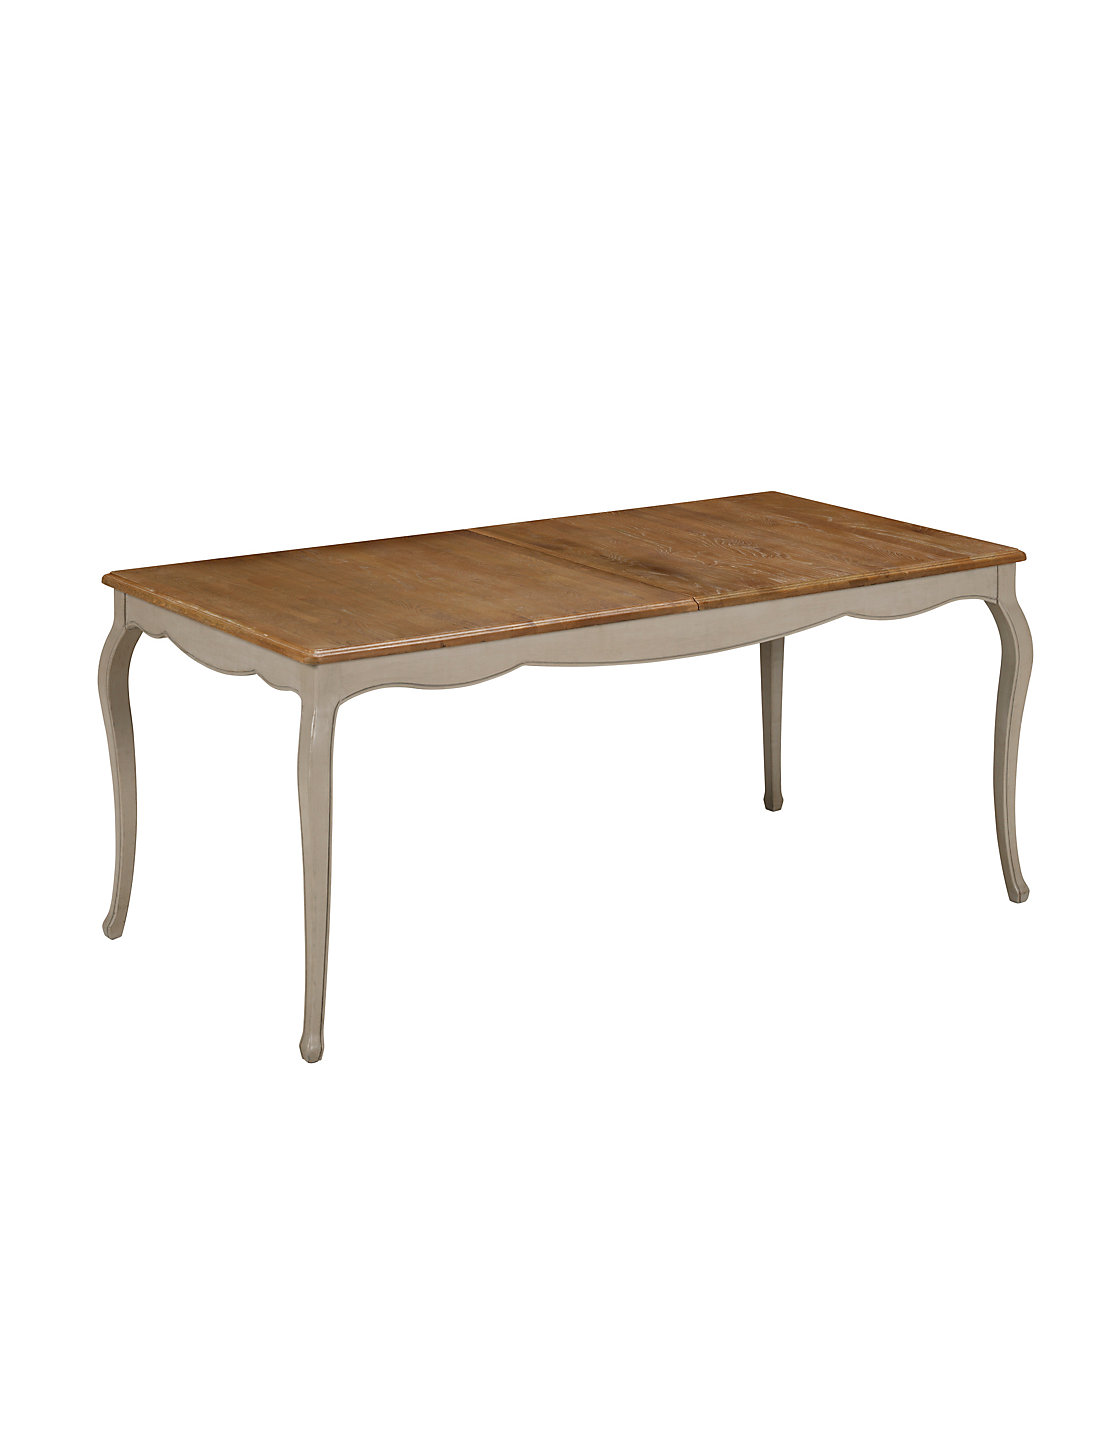 Celina Dining Table. Celina Dining Table   M S